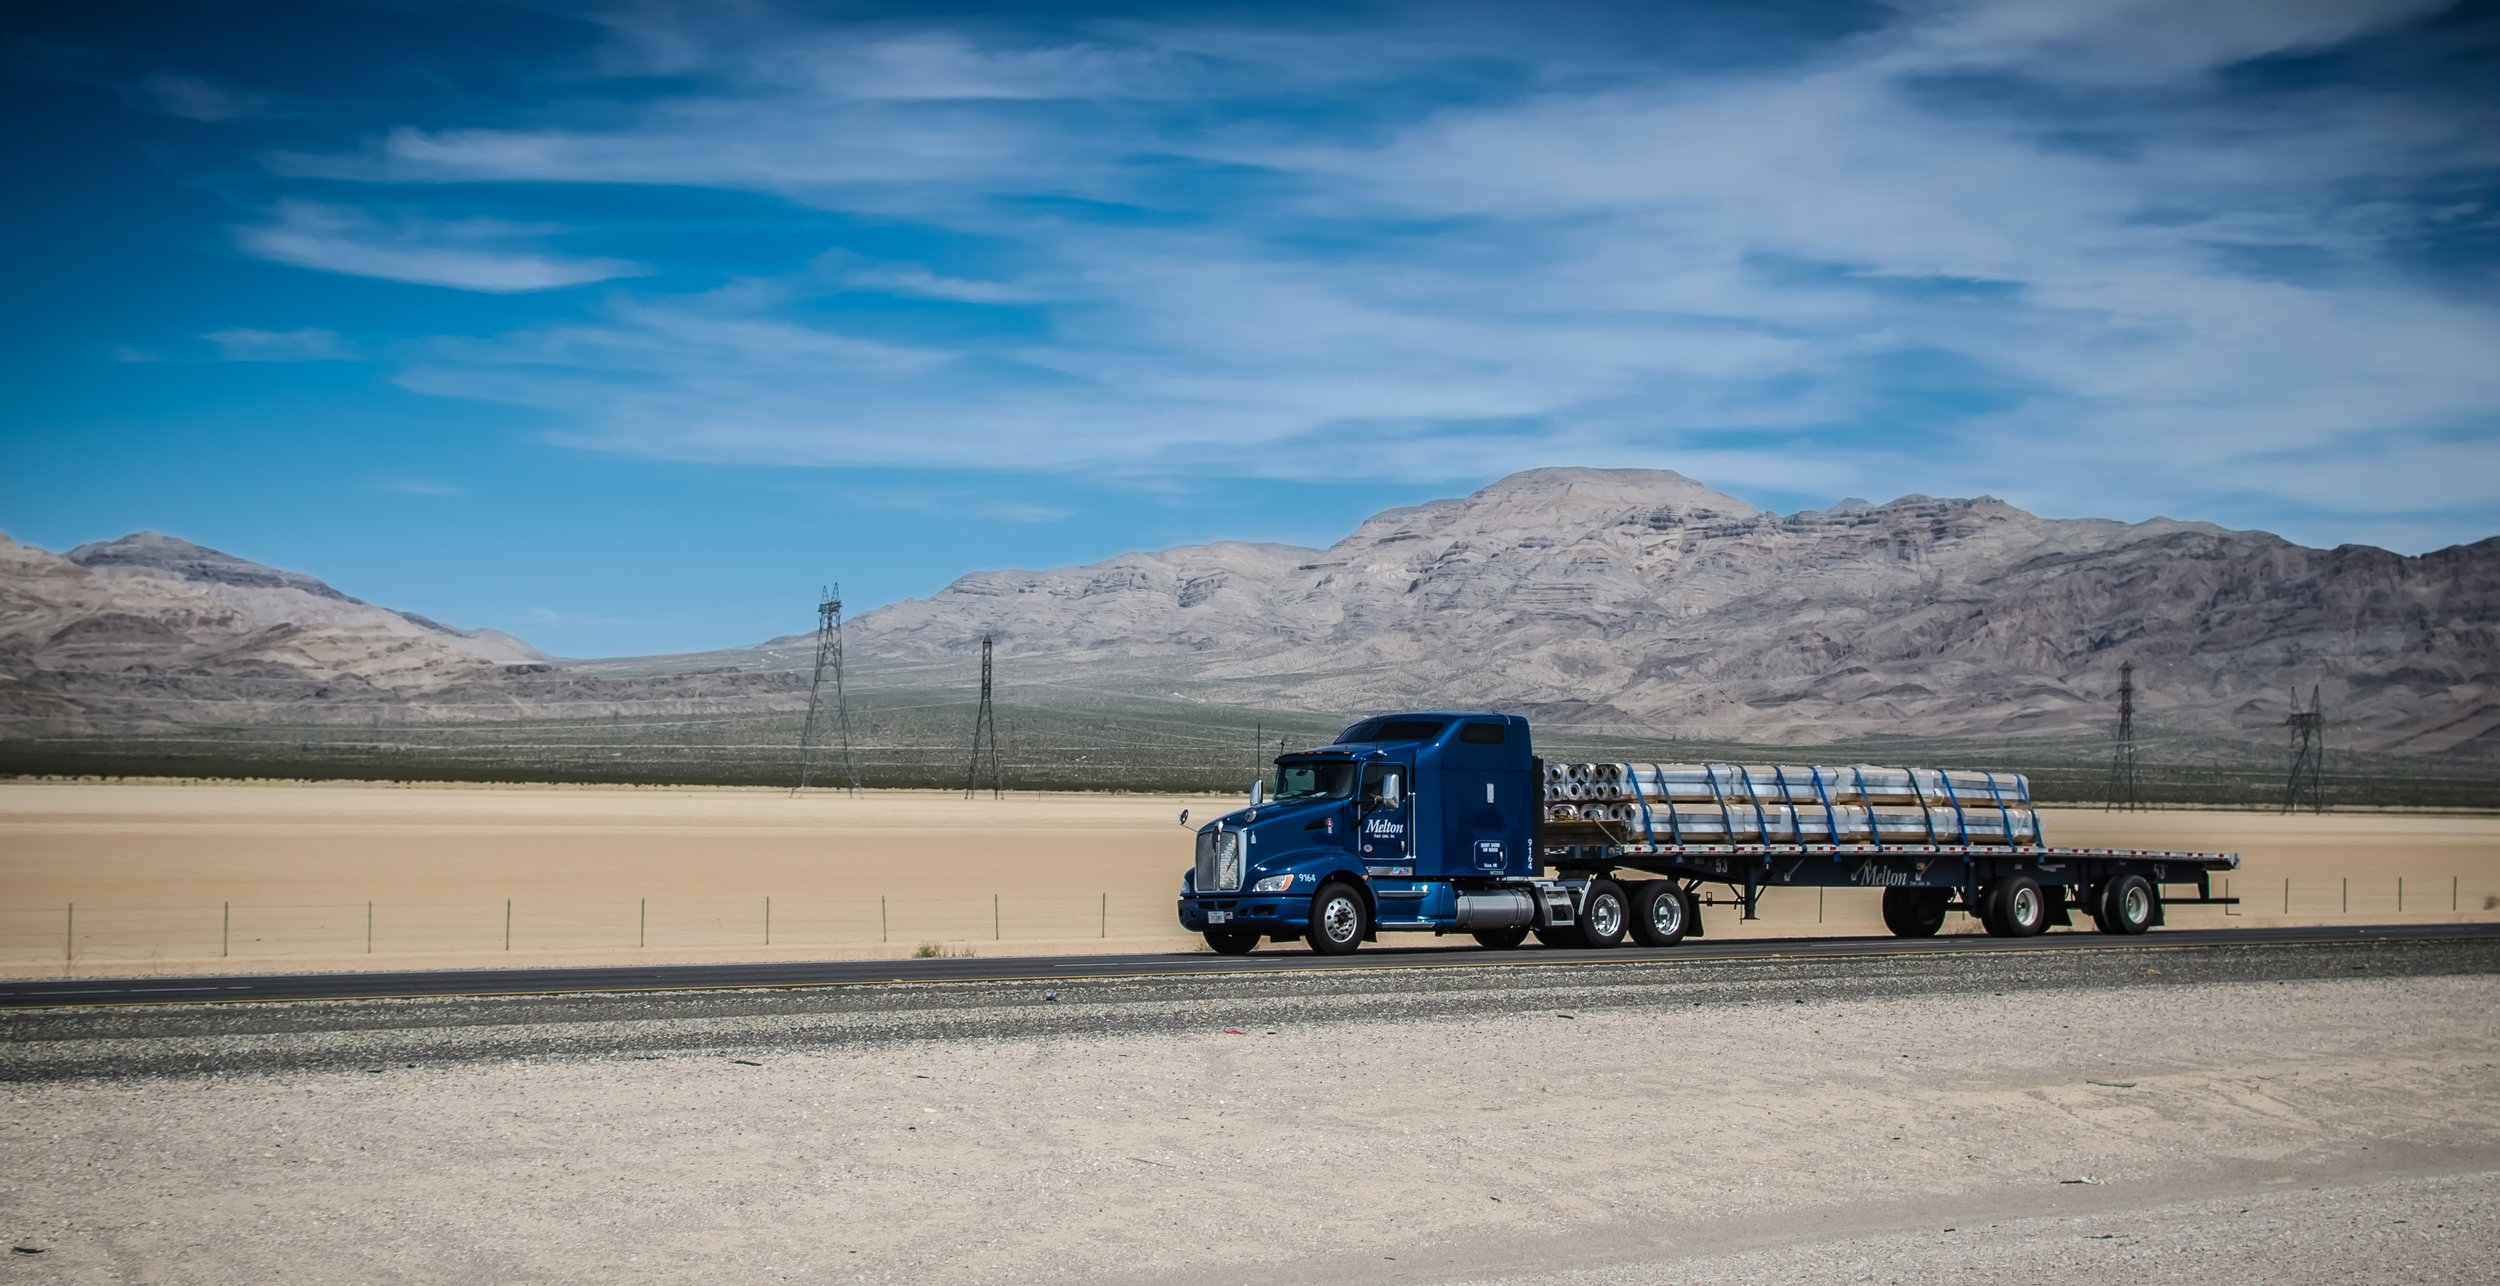 Images by 365Trucking.com